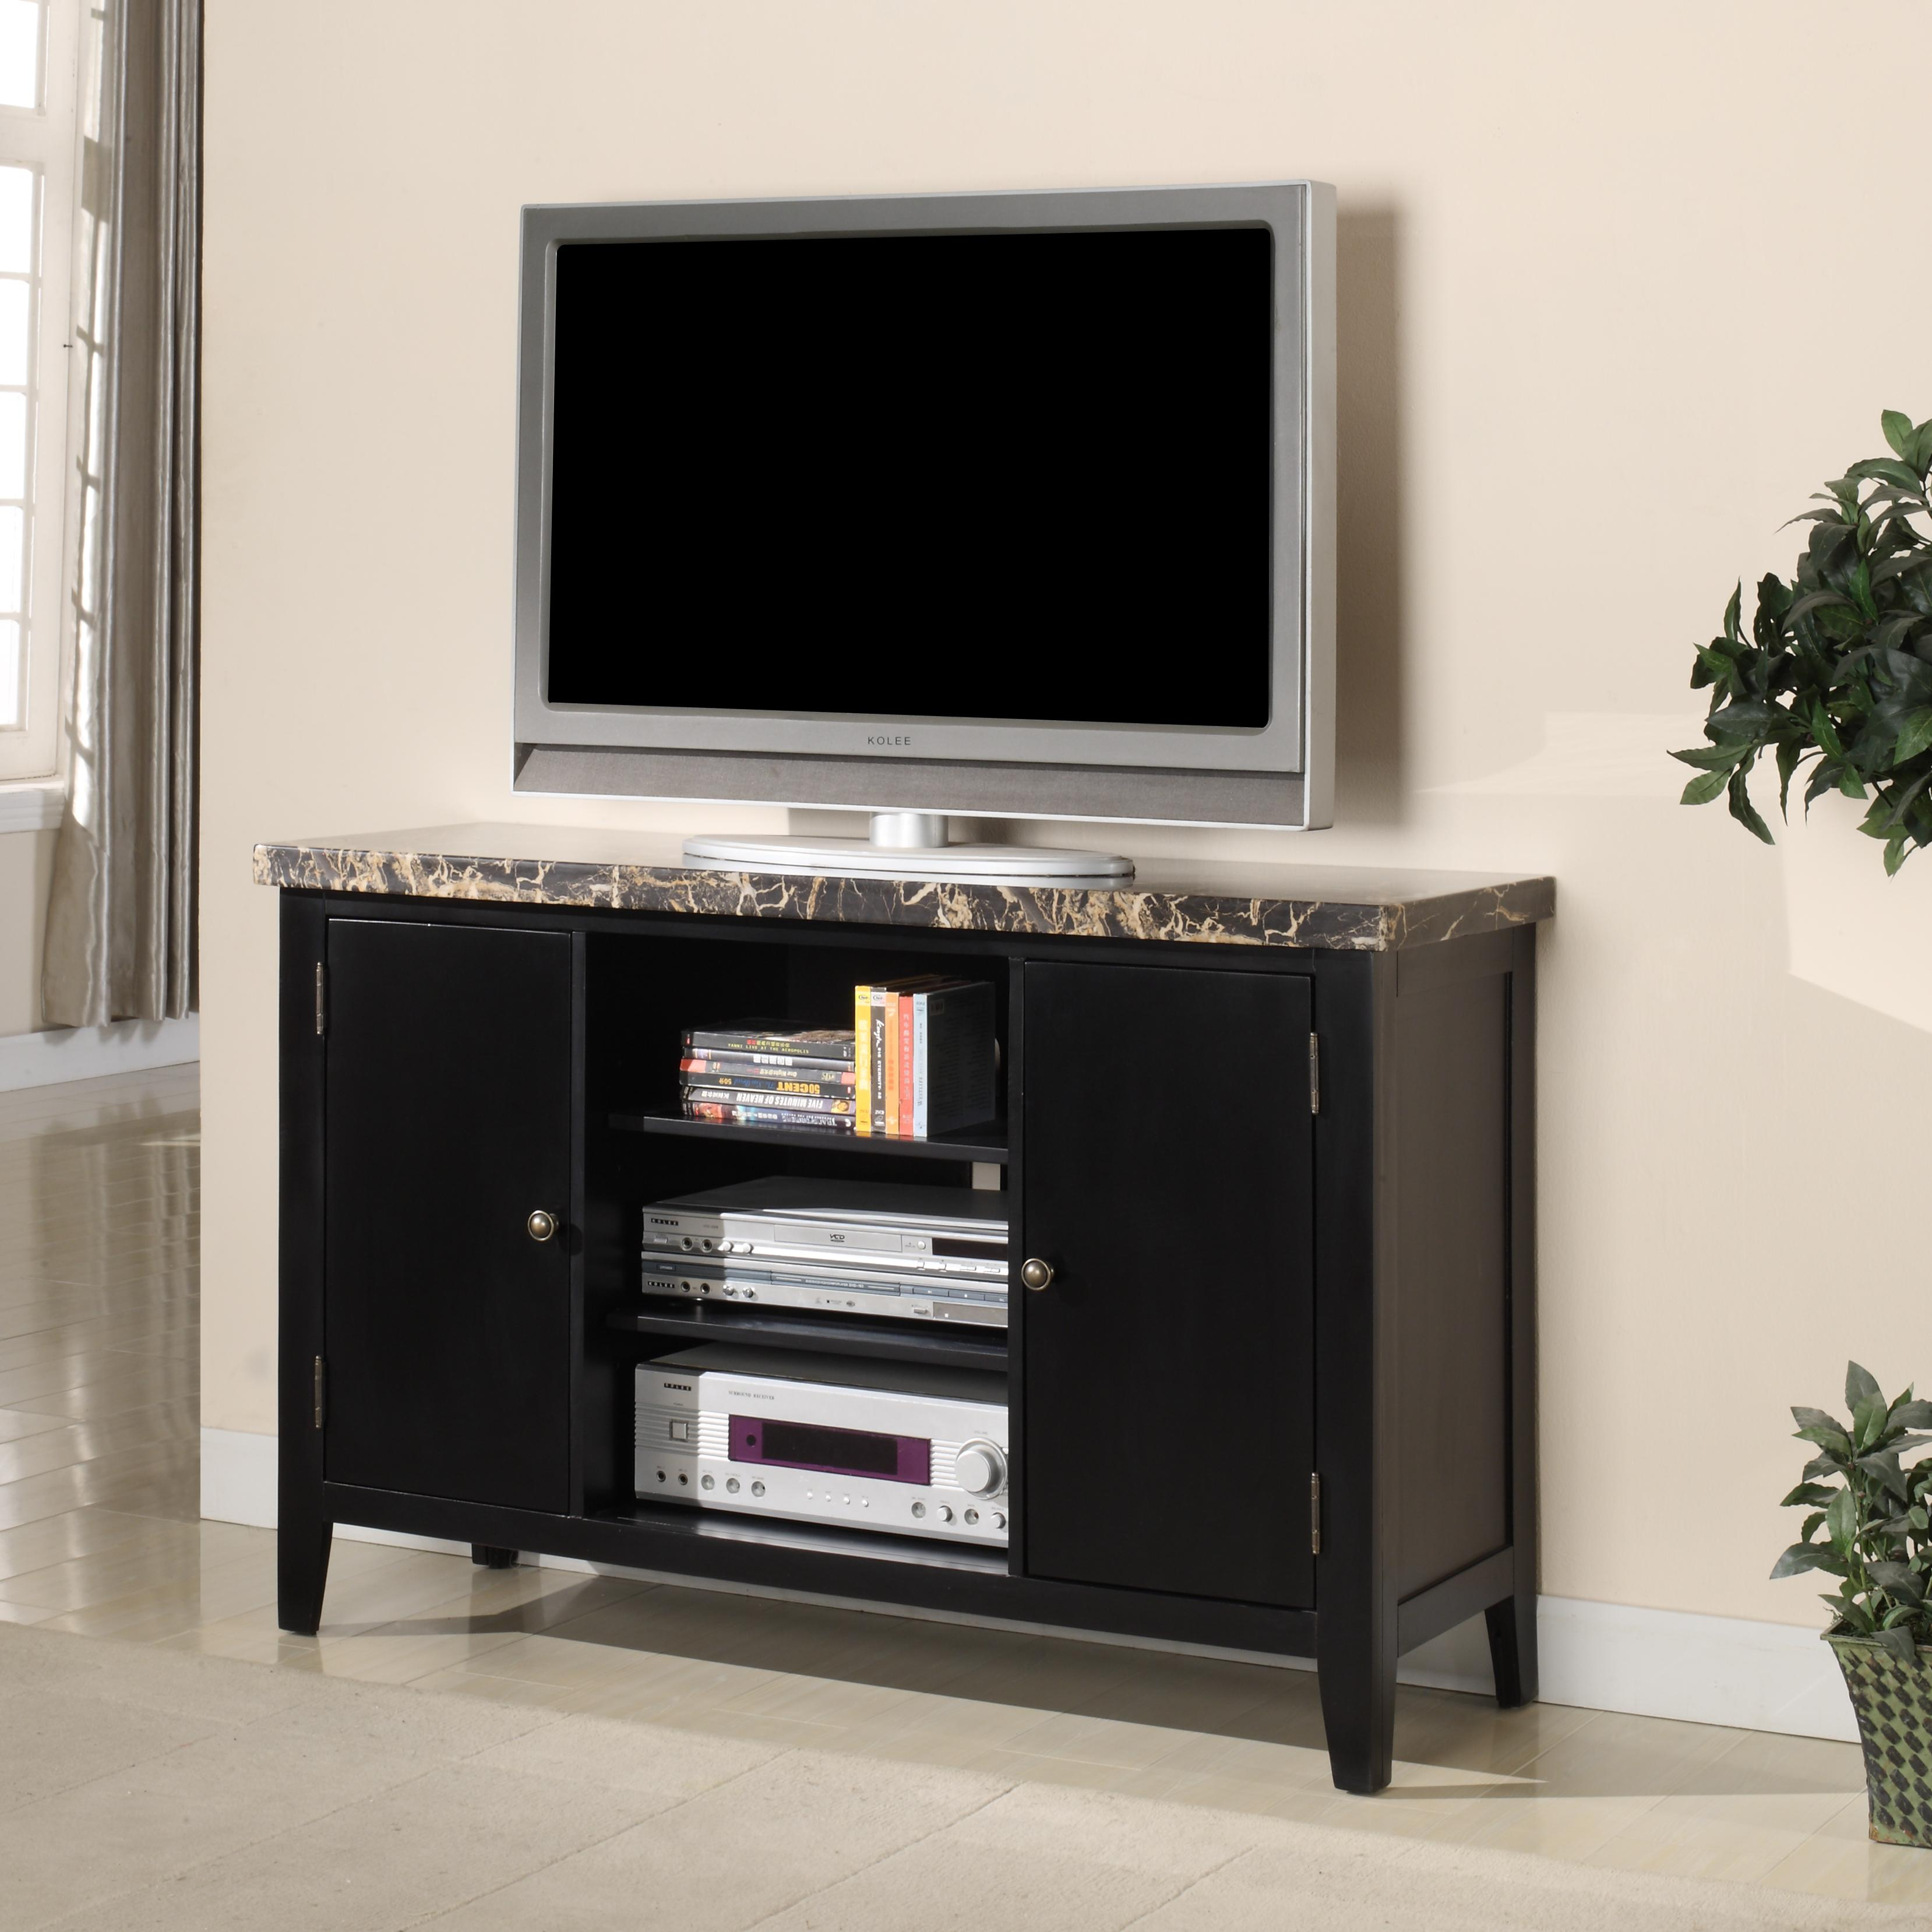 Lifestyle EC032 TV Stand - Item Number: CEC032-ETV